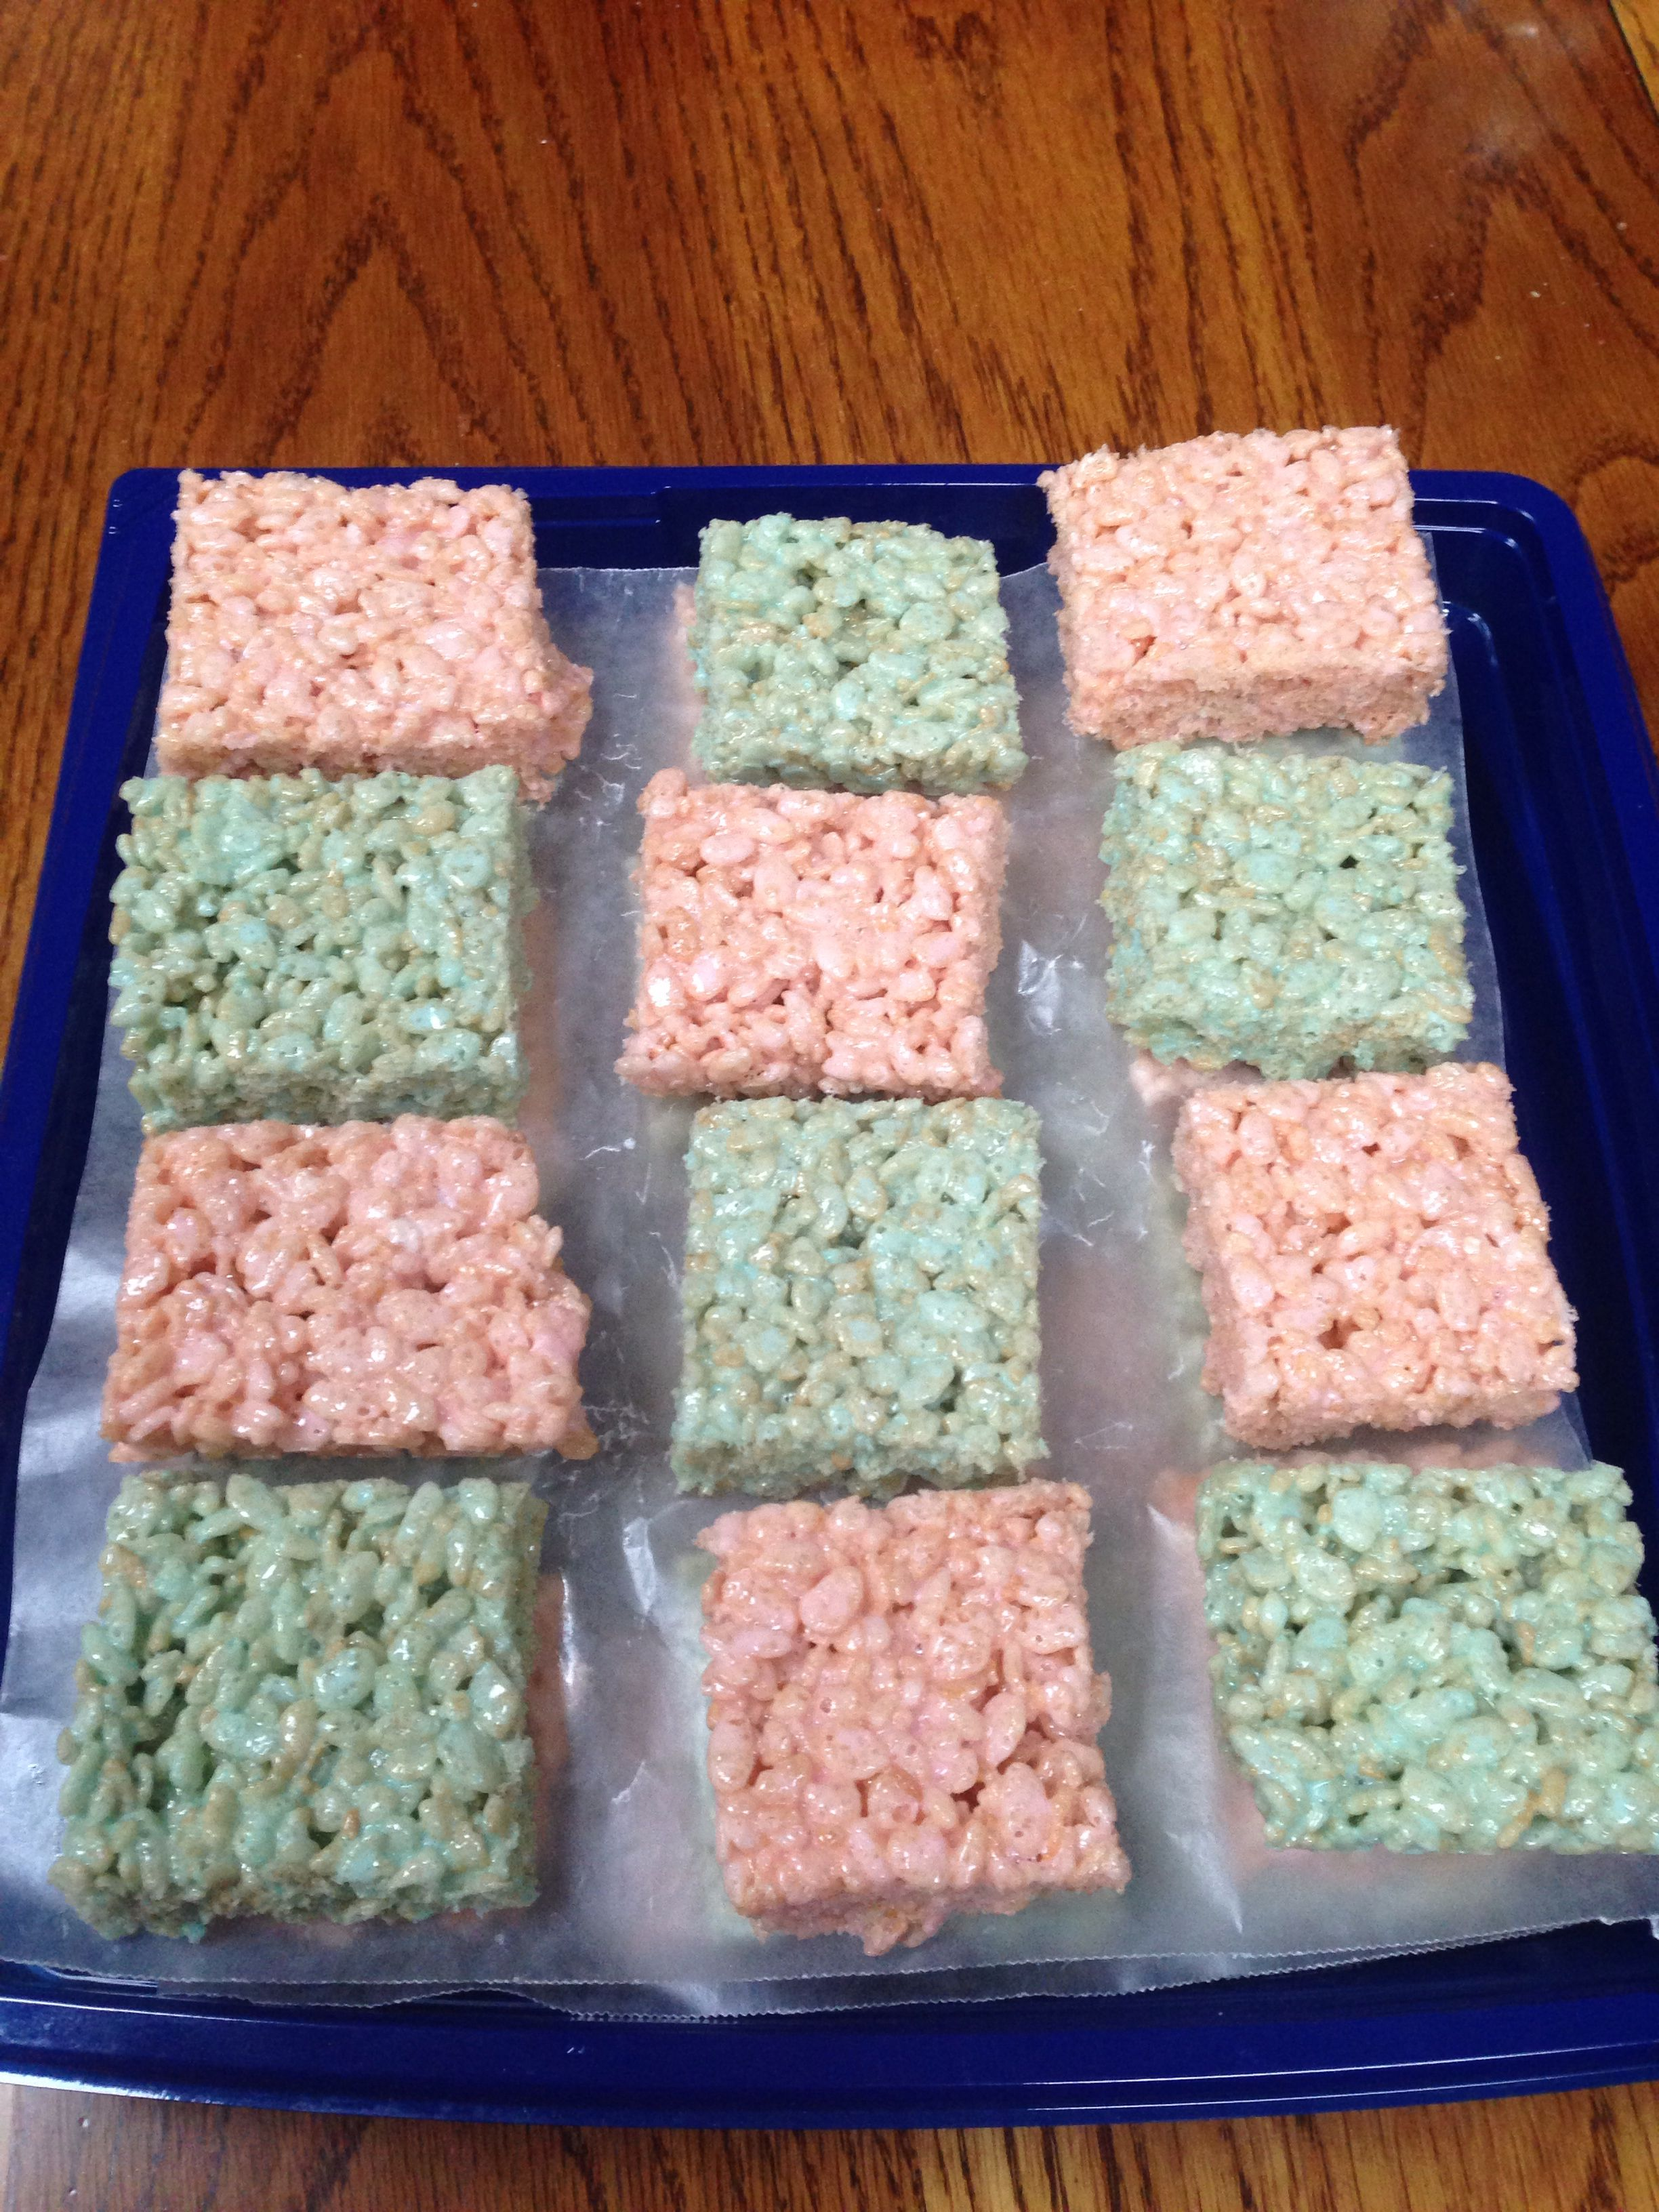 Baby shower rice krispy treat ideas - Pink And Blue Rice Krispie Treats As A Dish For Baby Gender Reveal Party